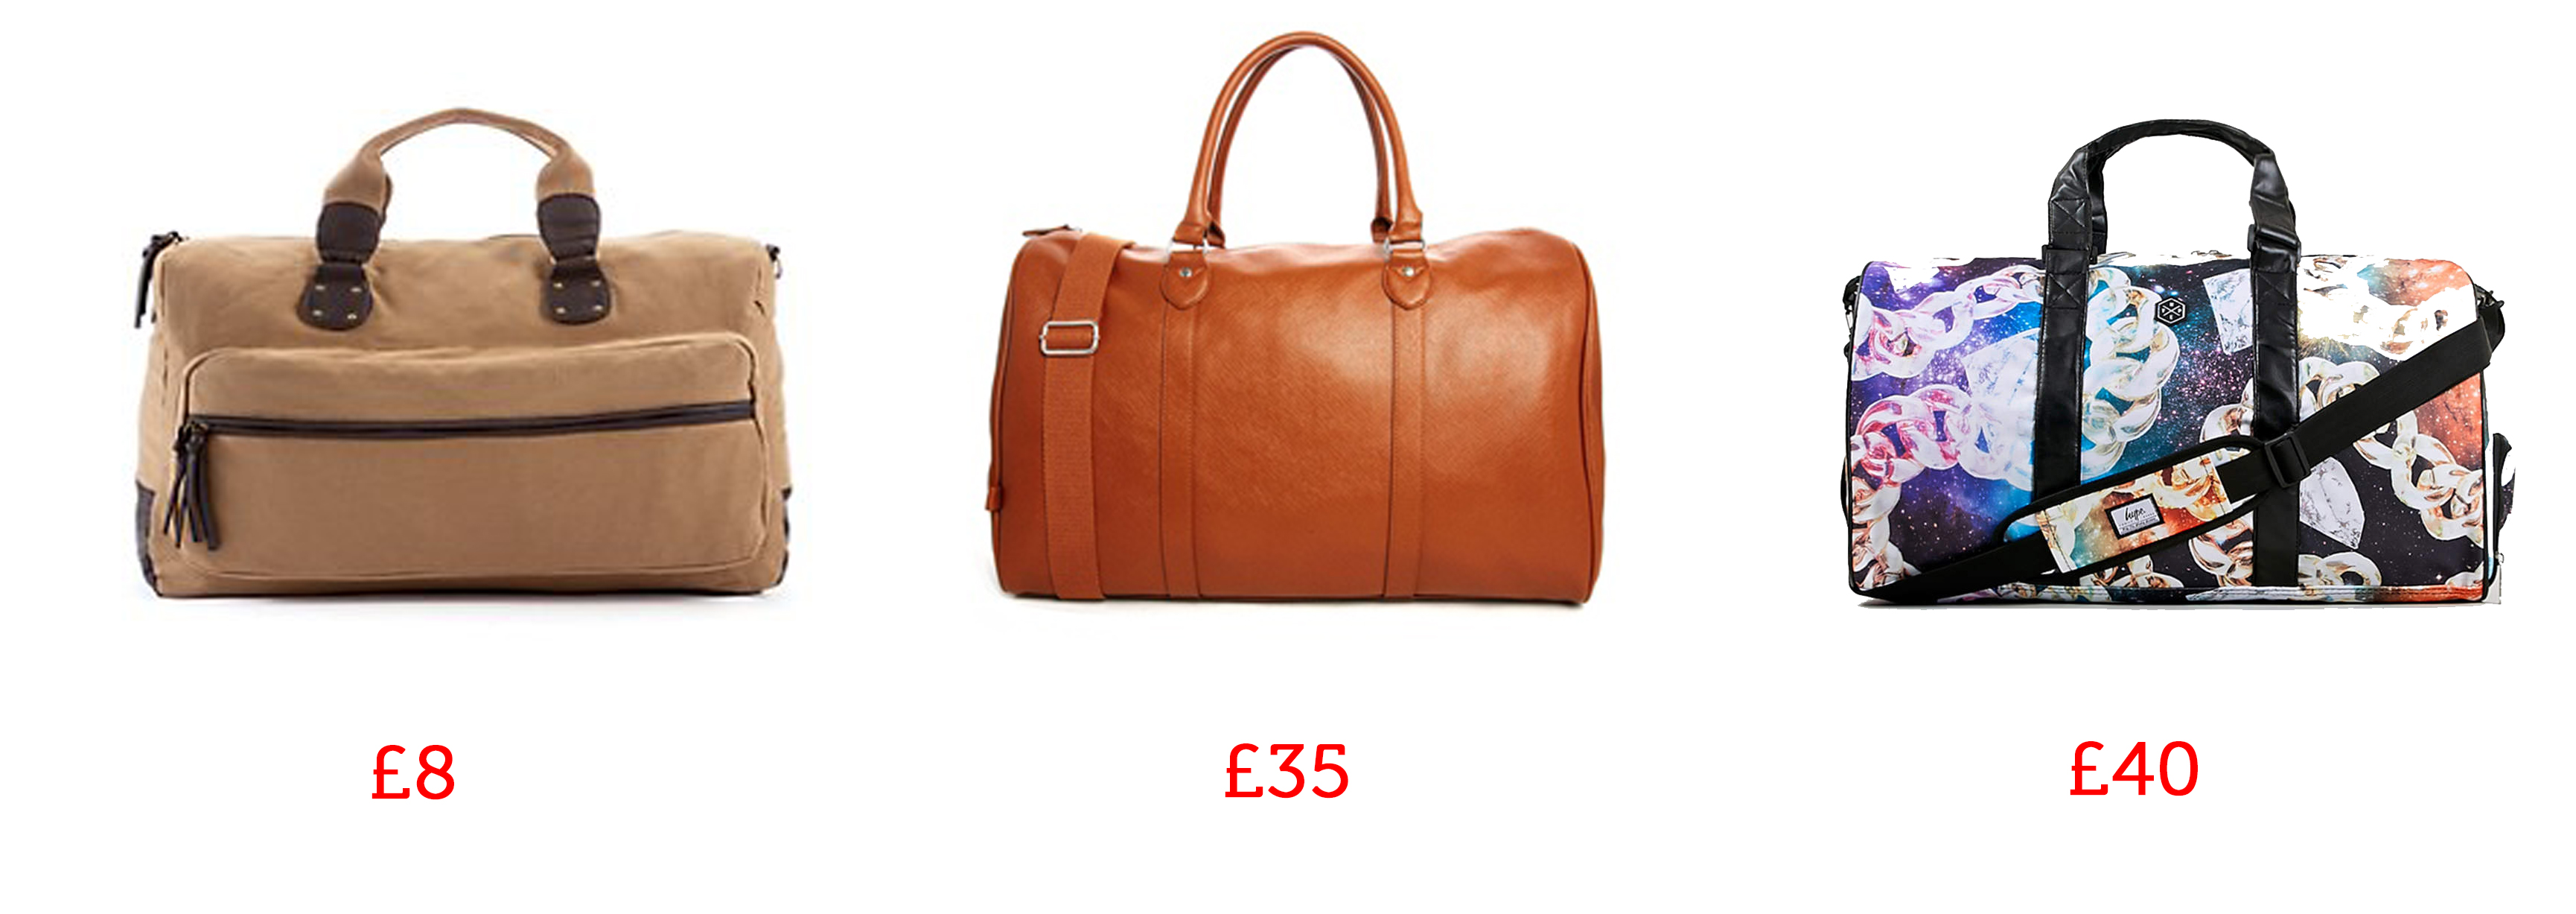 holdalls man bag asos new look topman